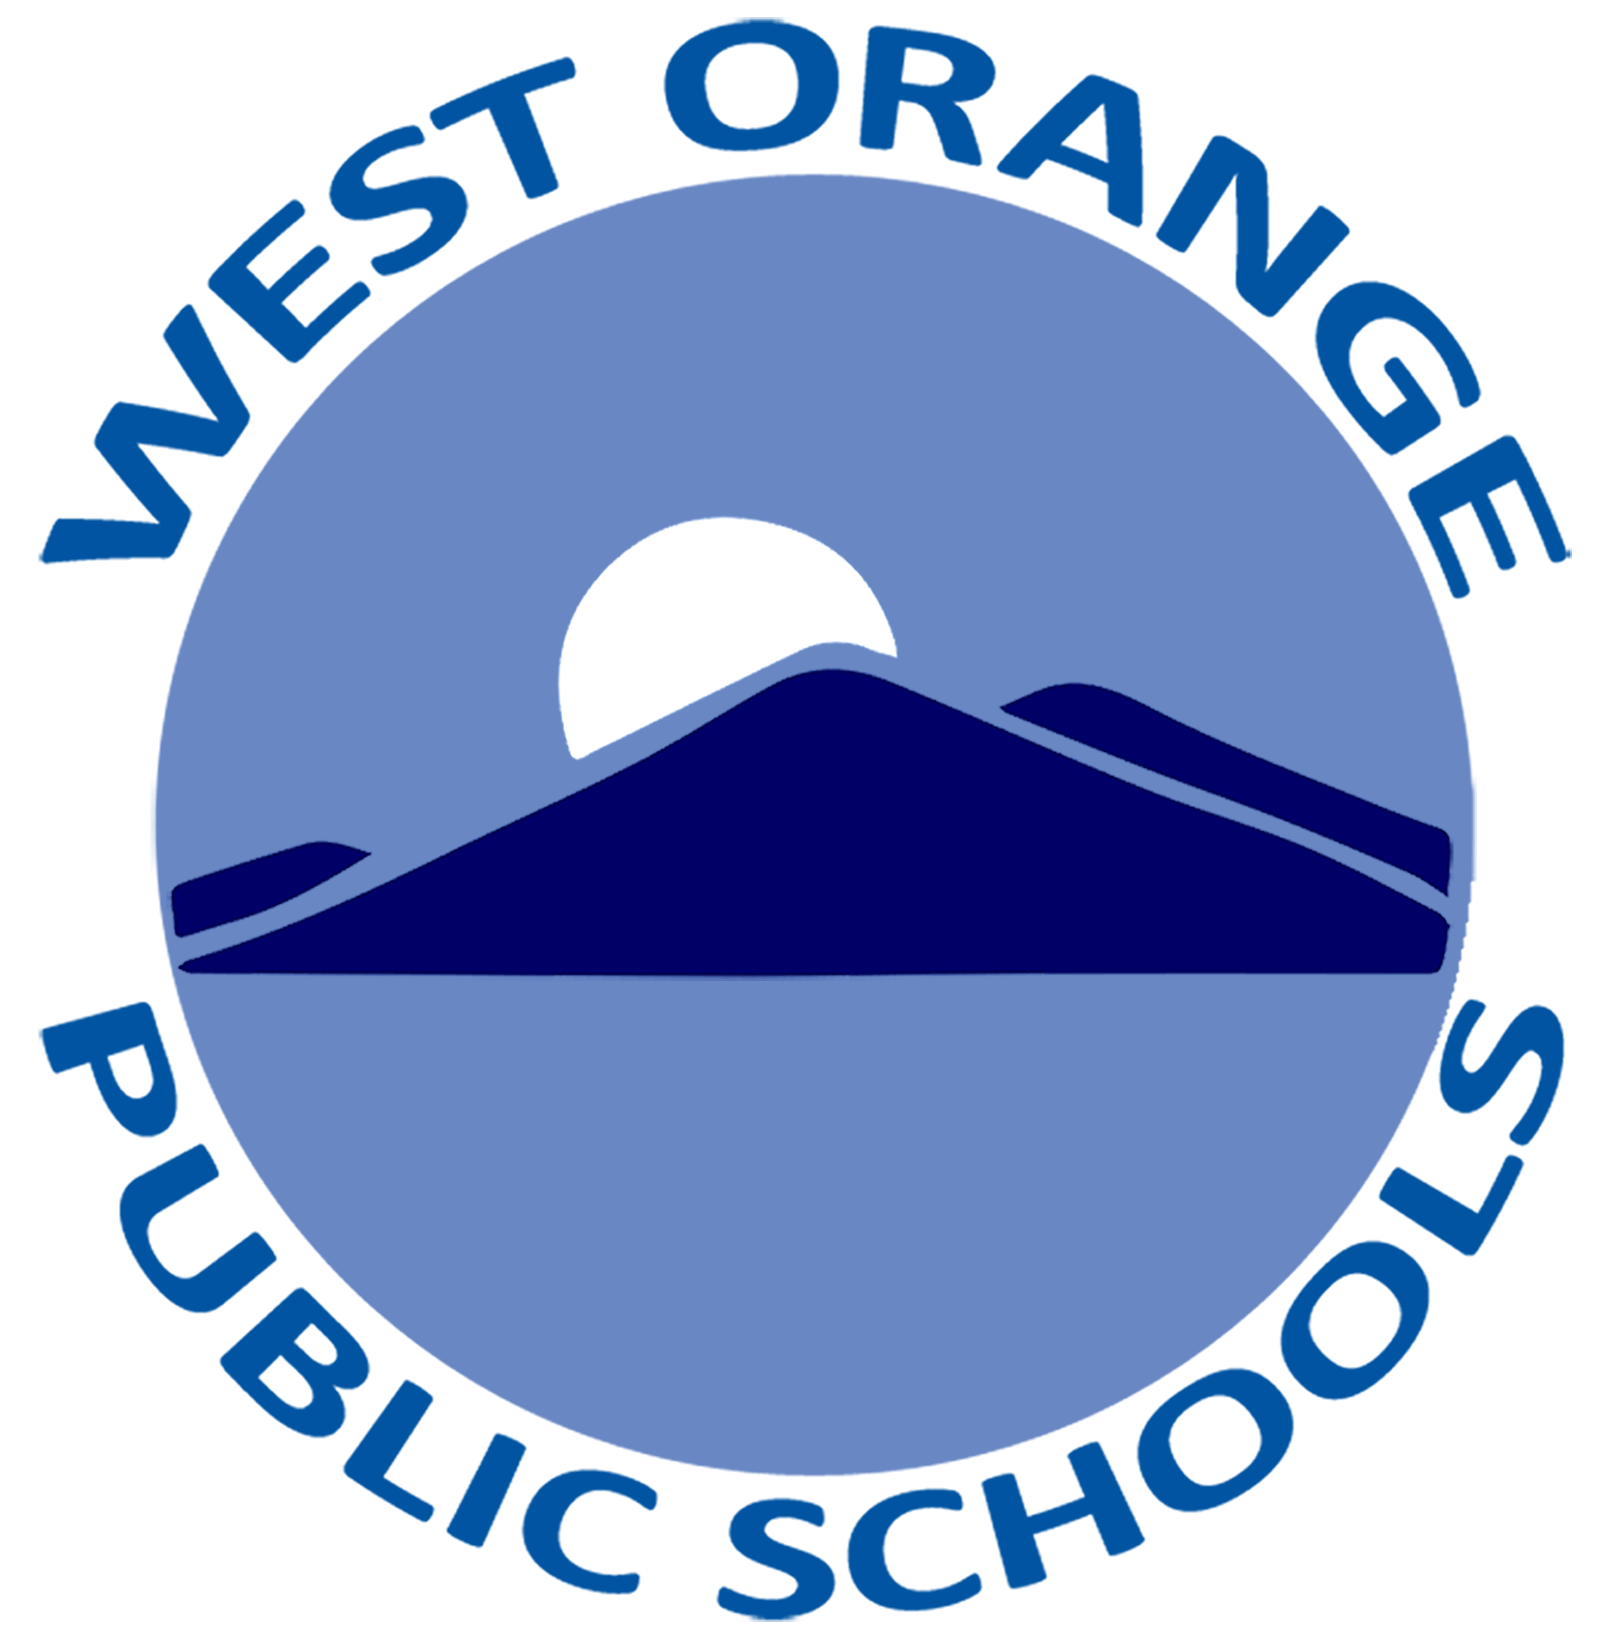 2019-2020 West Orange Public School District Goals